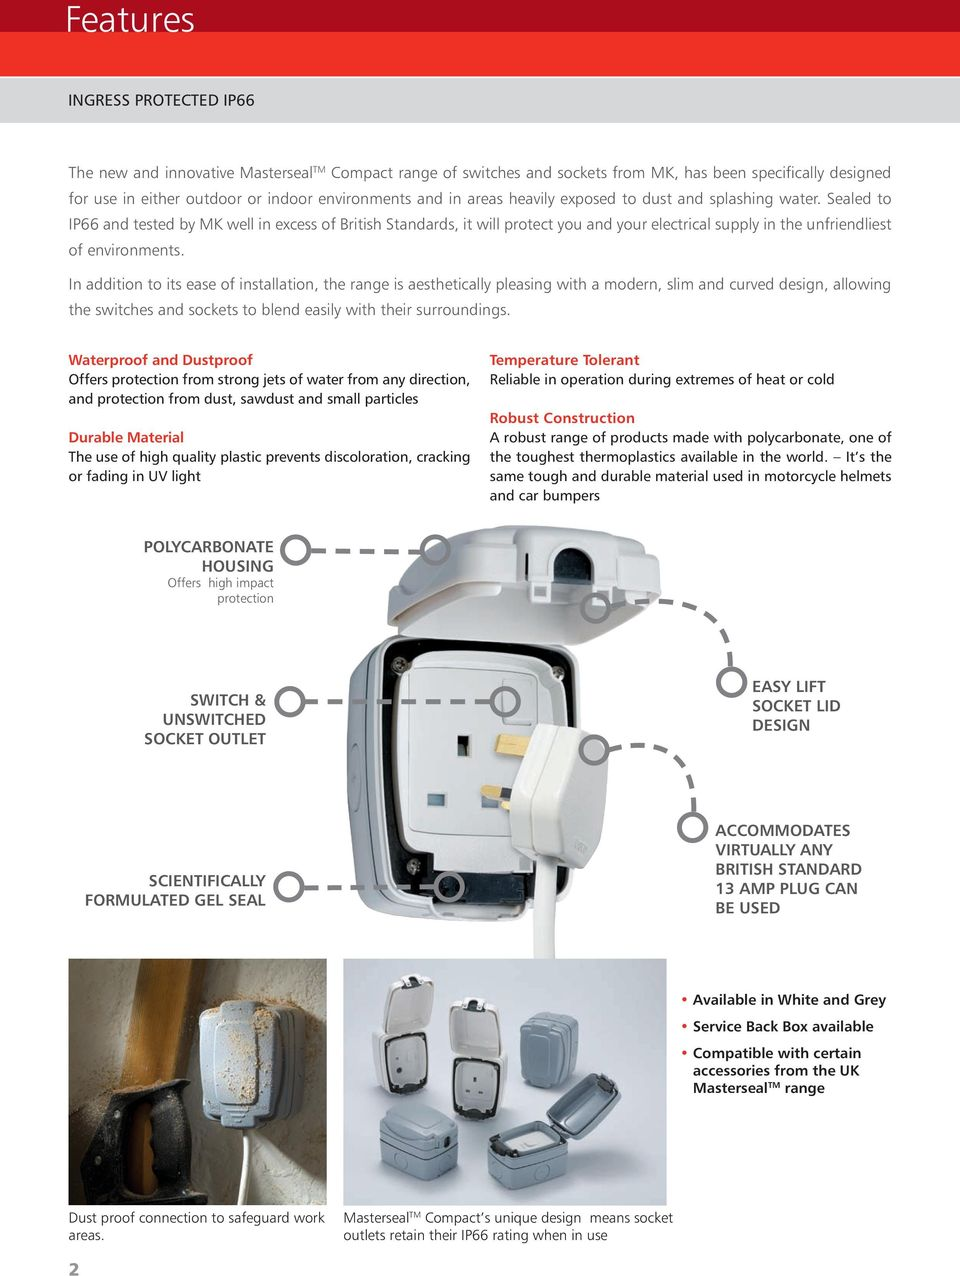 Masterseal Tm Compact Ingress Protected Ip66 Pdf Mk Wiring Devices Catalogue Sealed To And Tested By Well In Excess Of British Standards It Will 3 Socket Outlets Switches